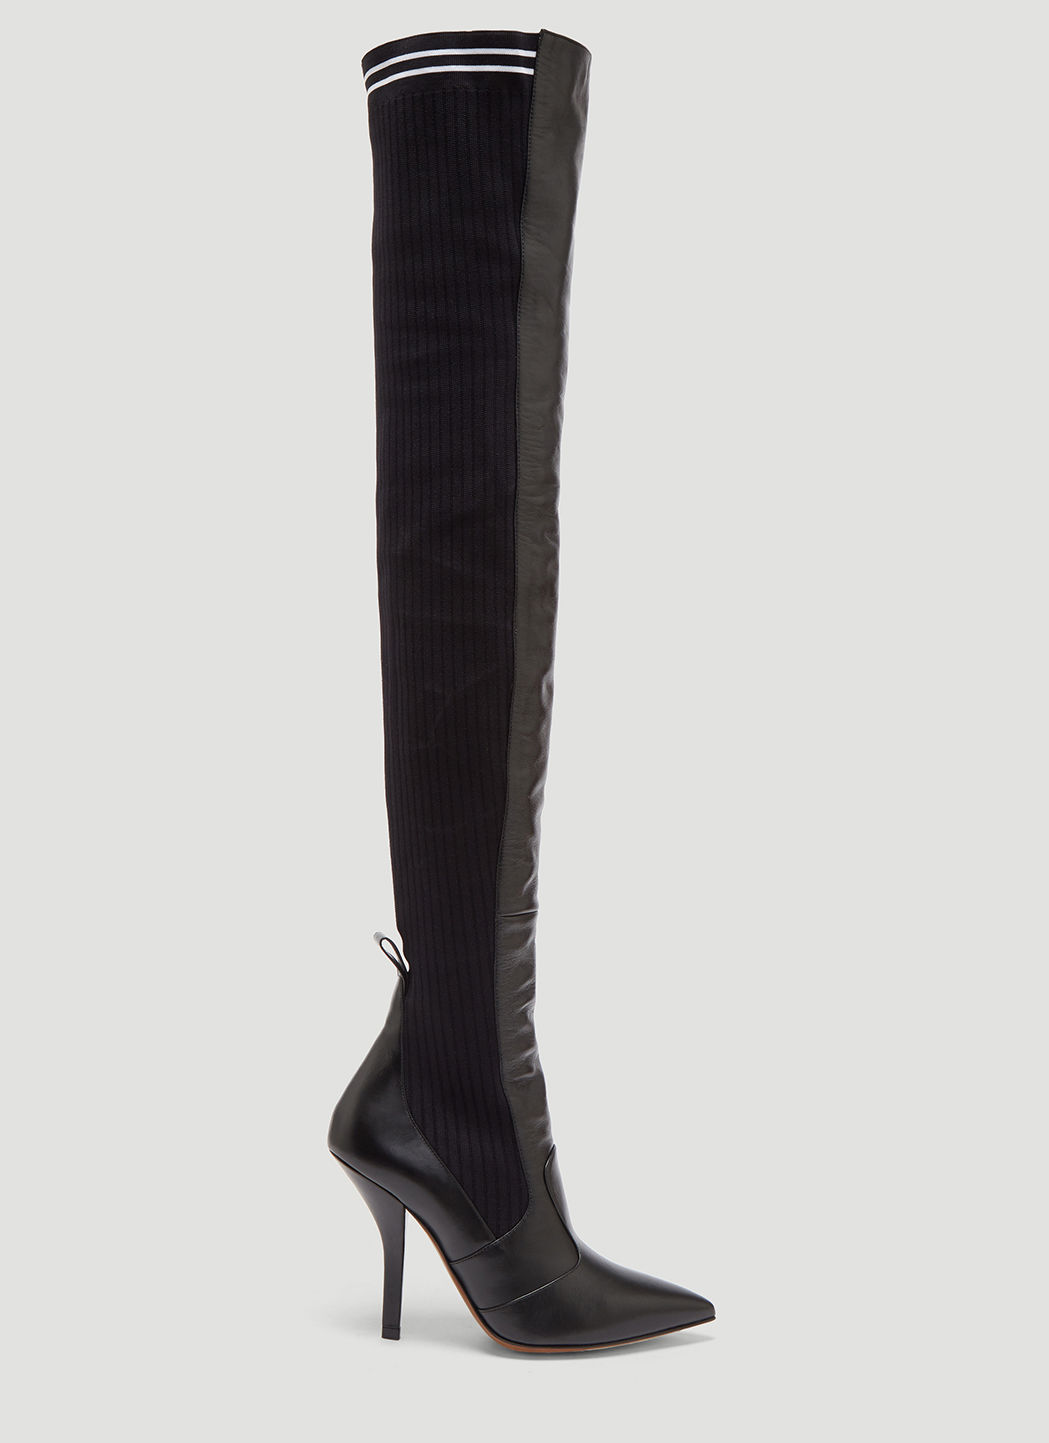 e430c9211cc Fendi Black Leather Thigh-High Sock Boots In Black